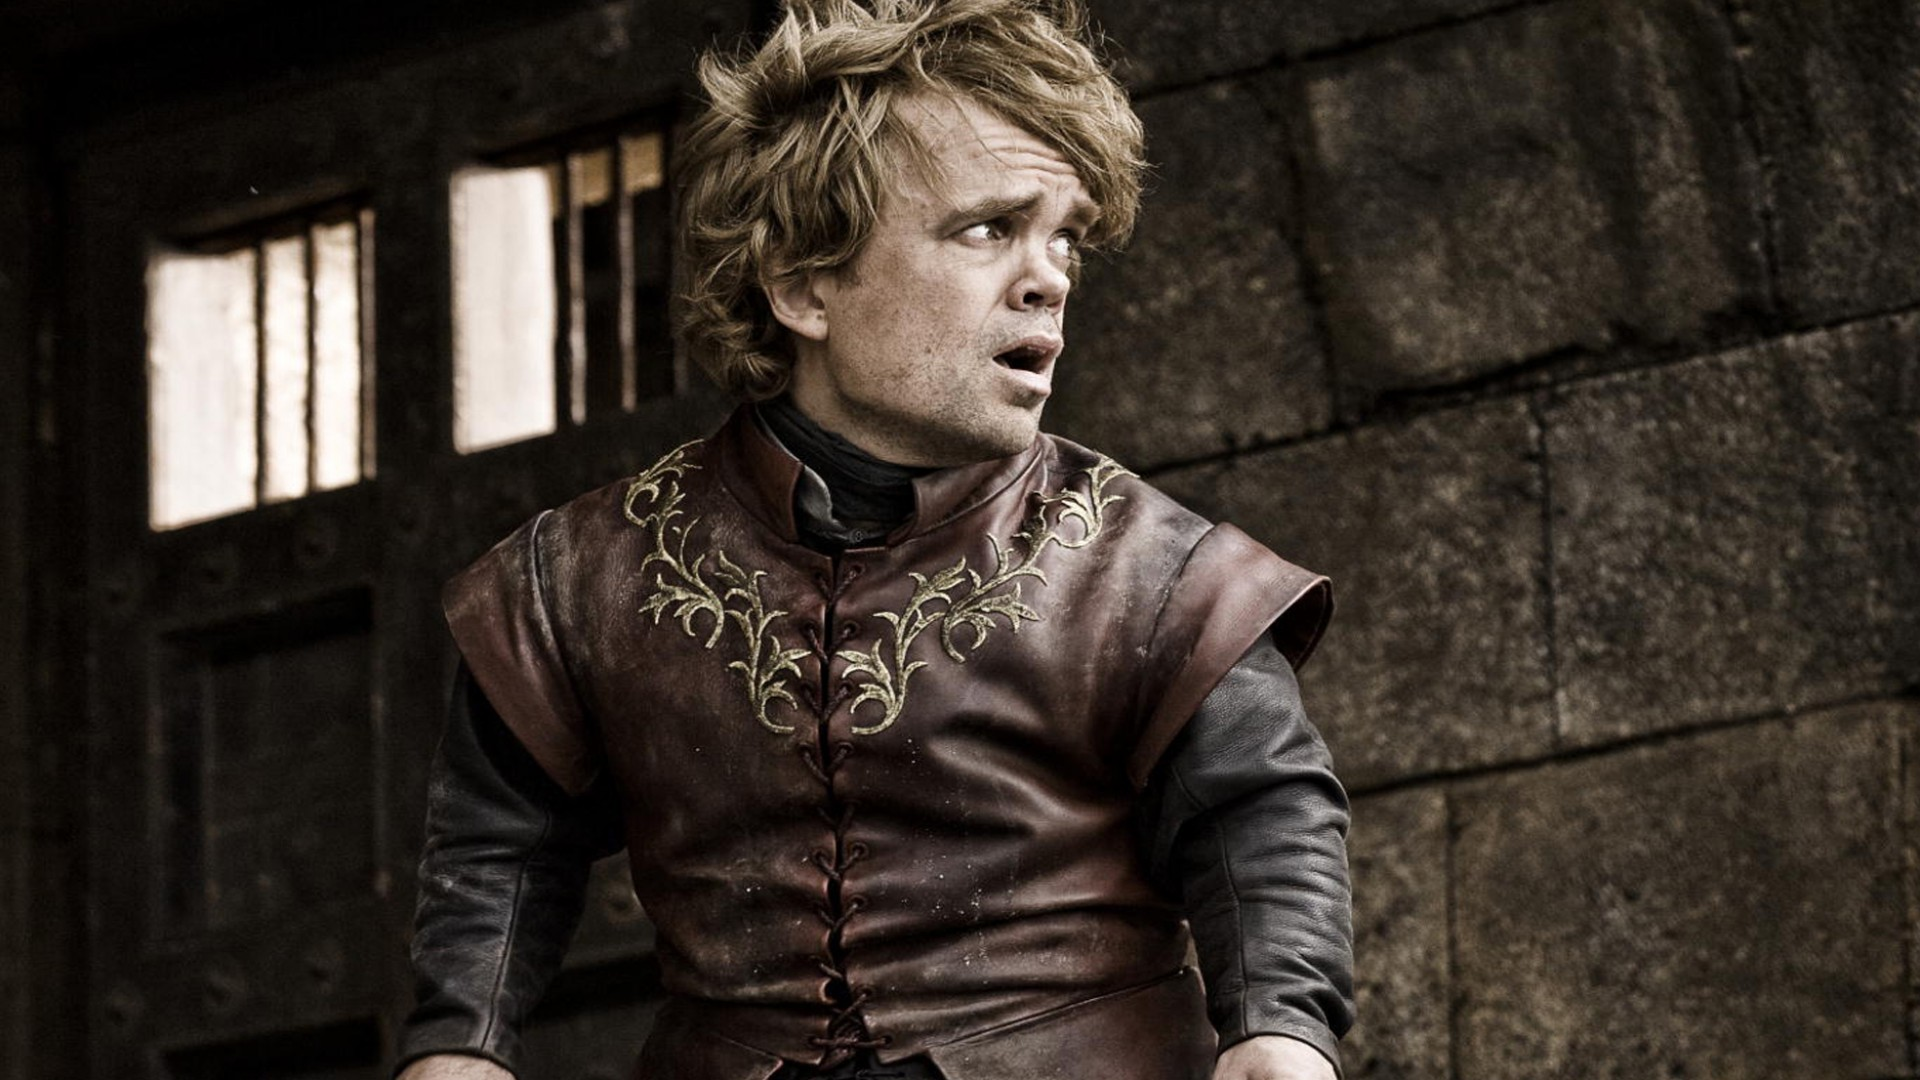 Game Of Thrones Tyrion Lannister Peter Dinklage Wallpaper